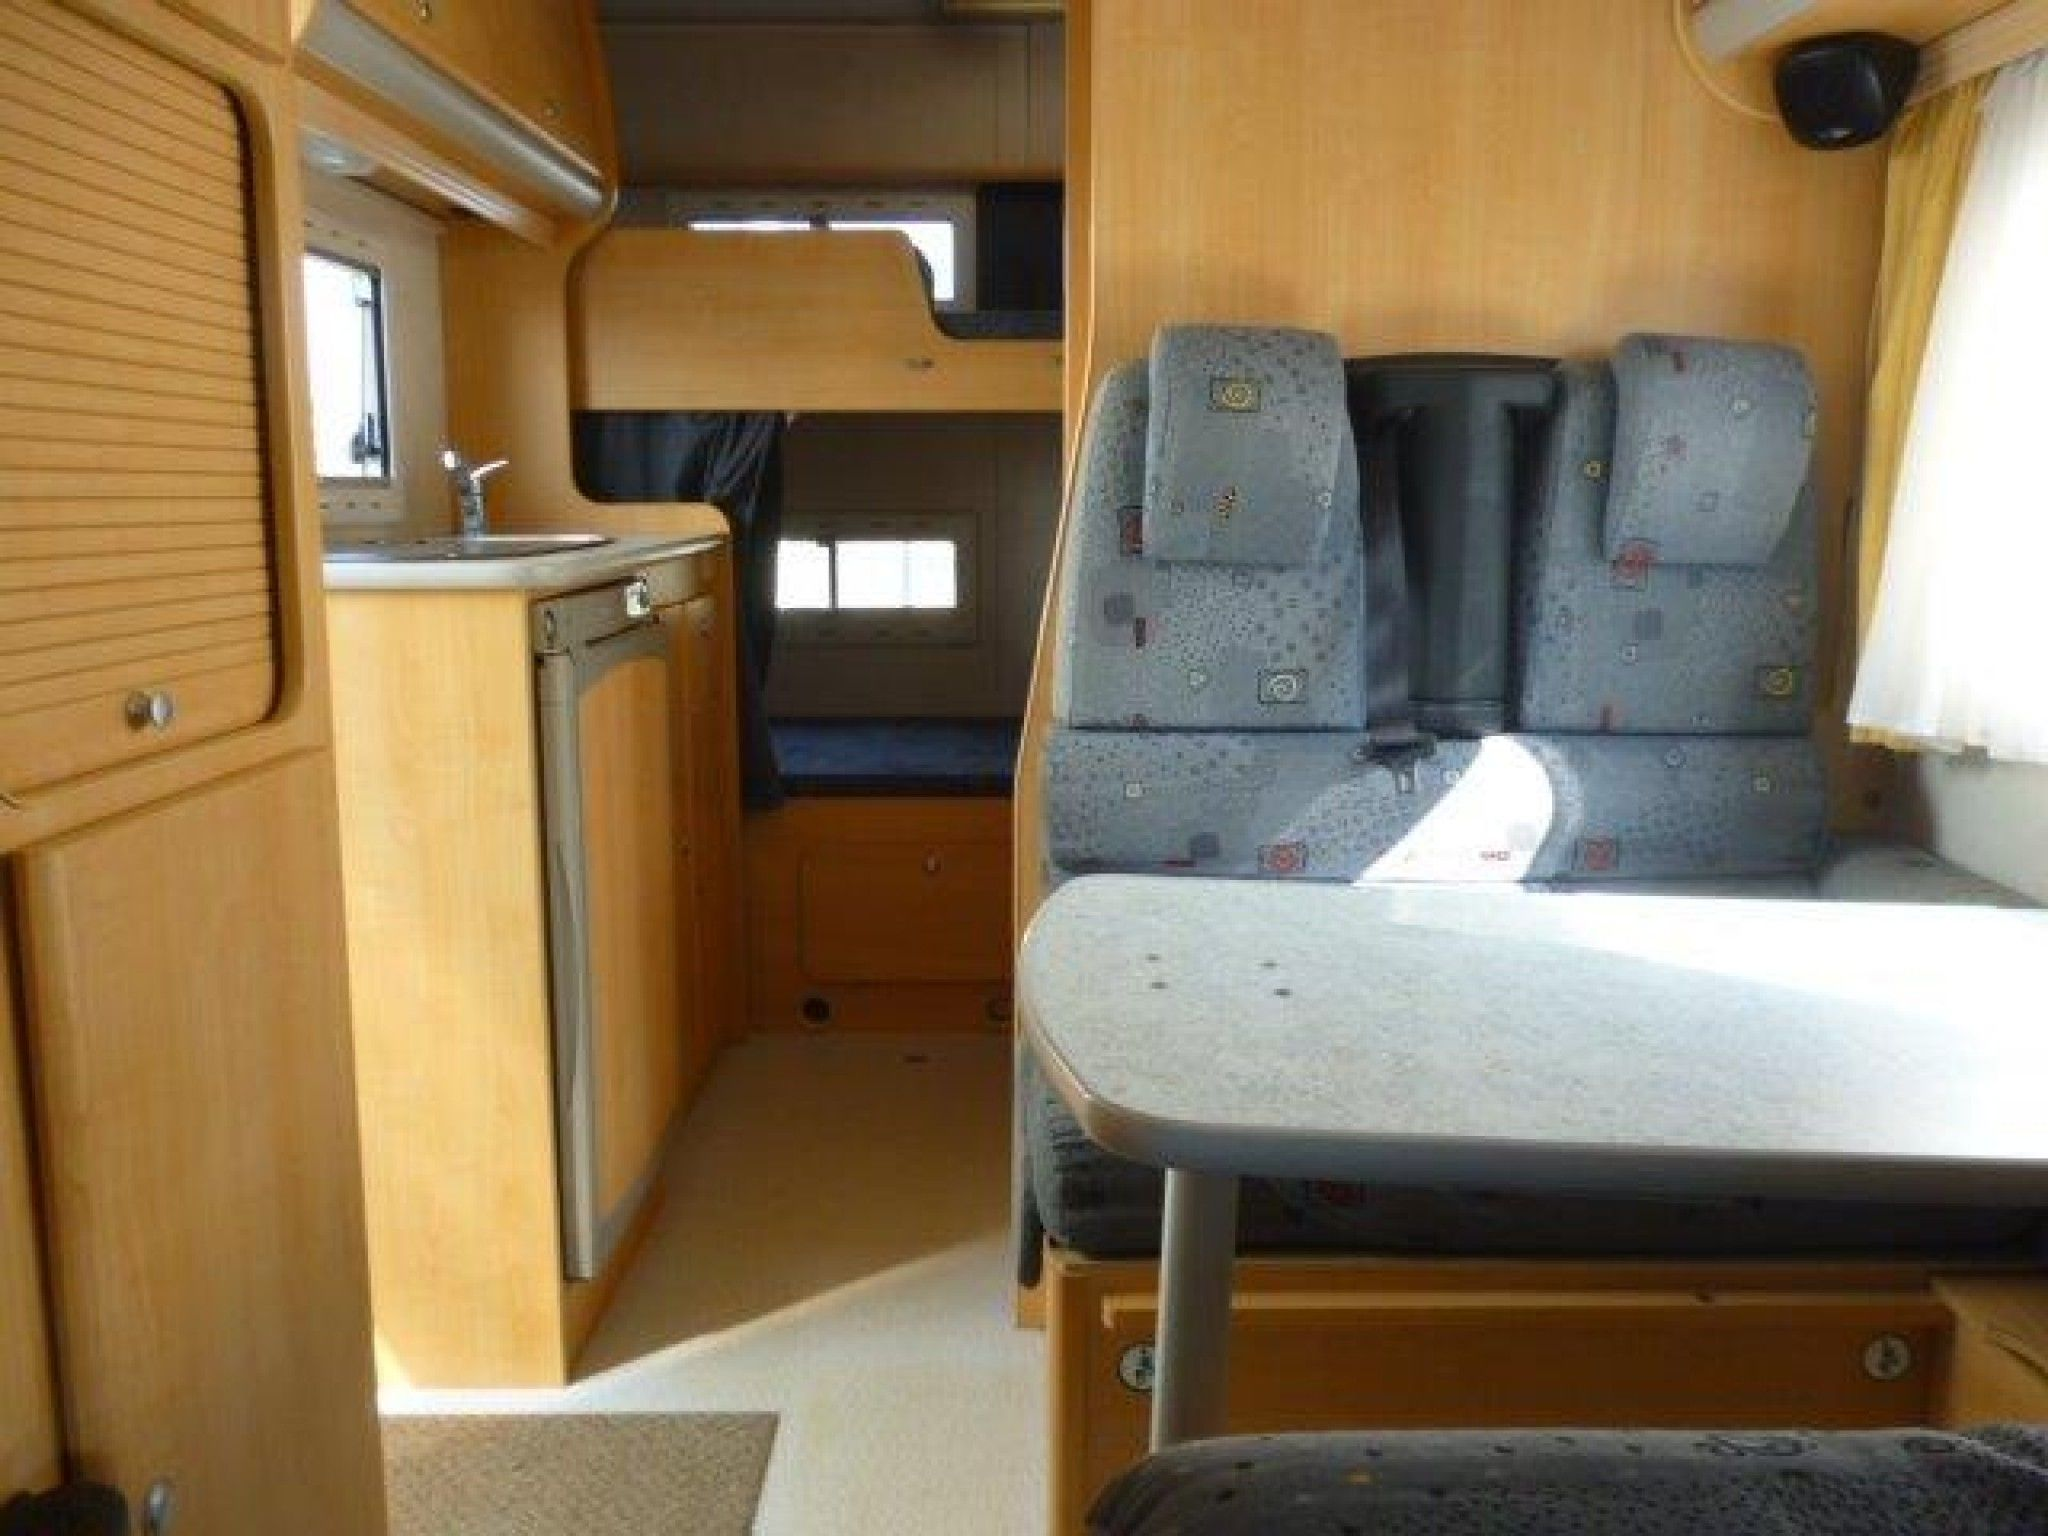 Chausson Welcome 23 - 4